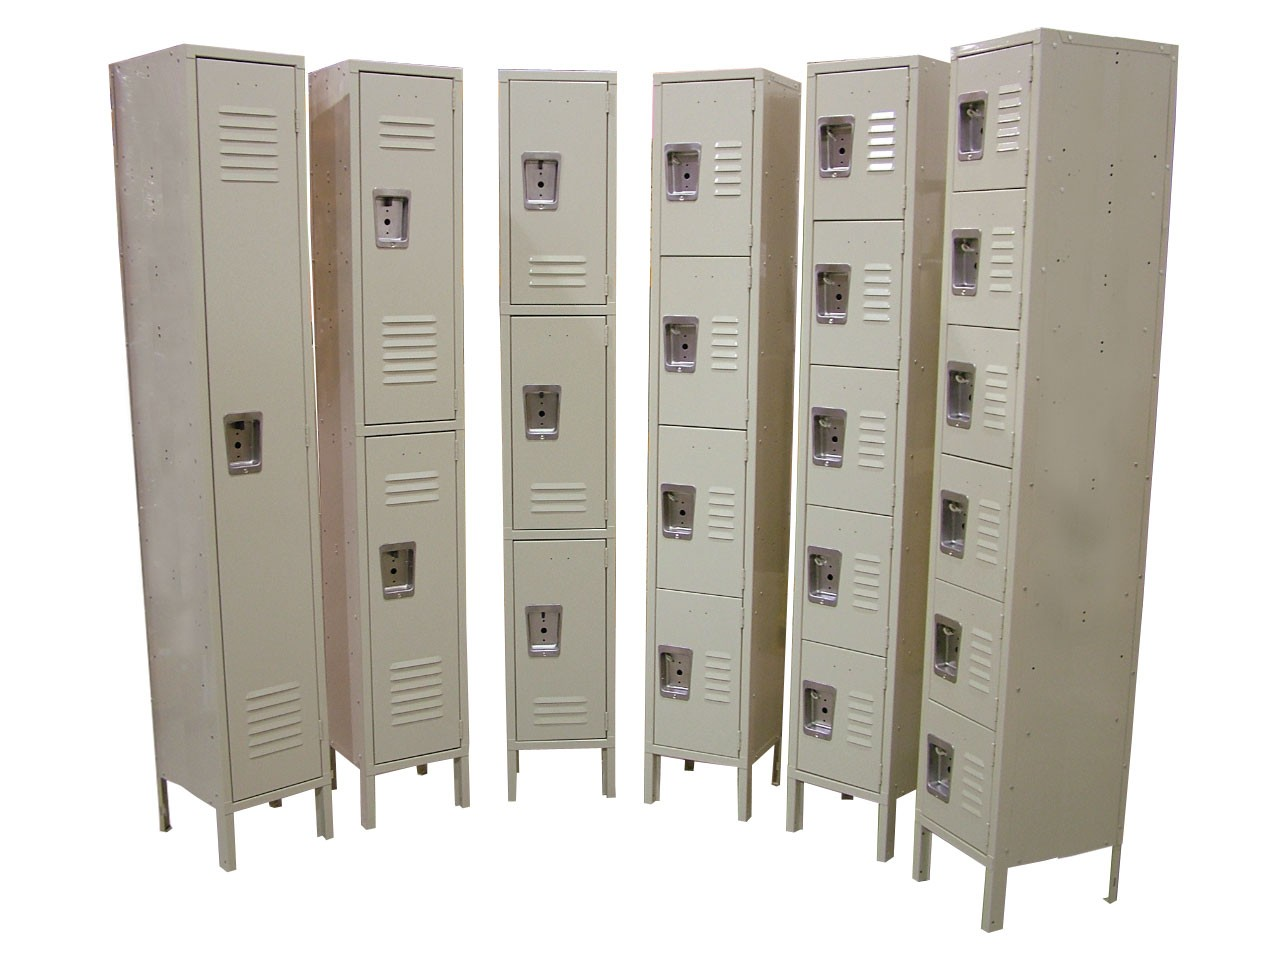 Omcan (FMA) LKT418 4-Tier Locker